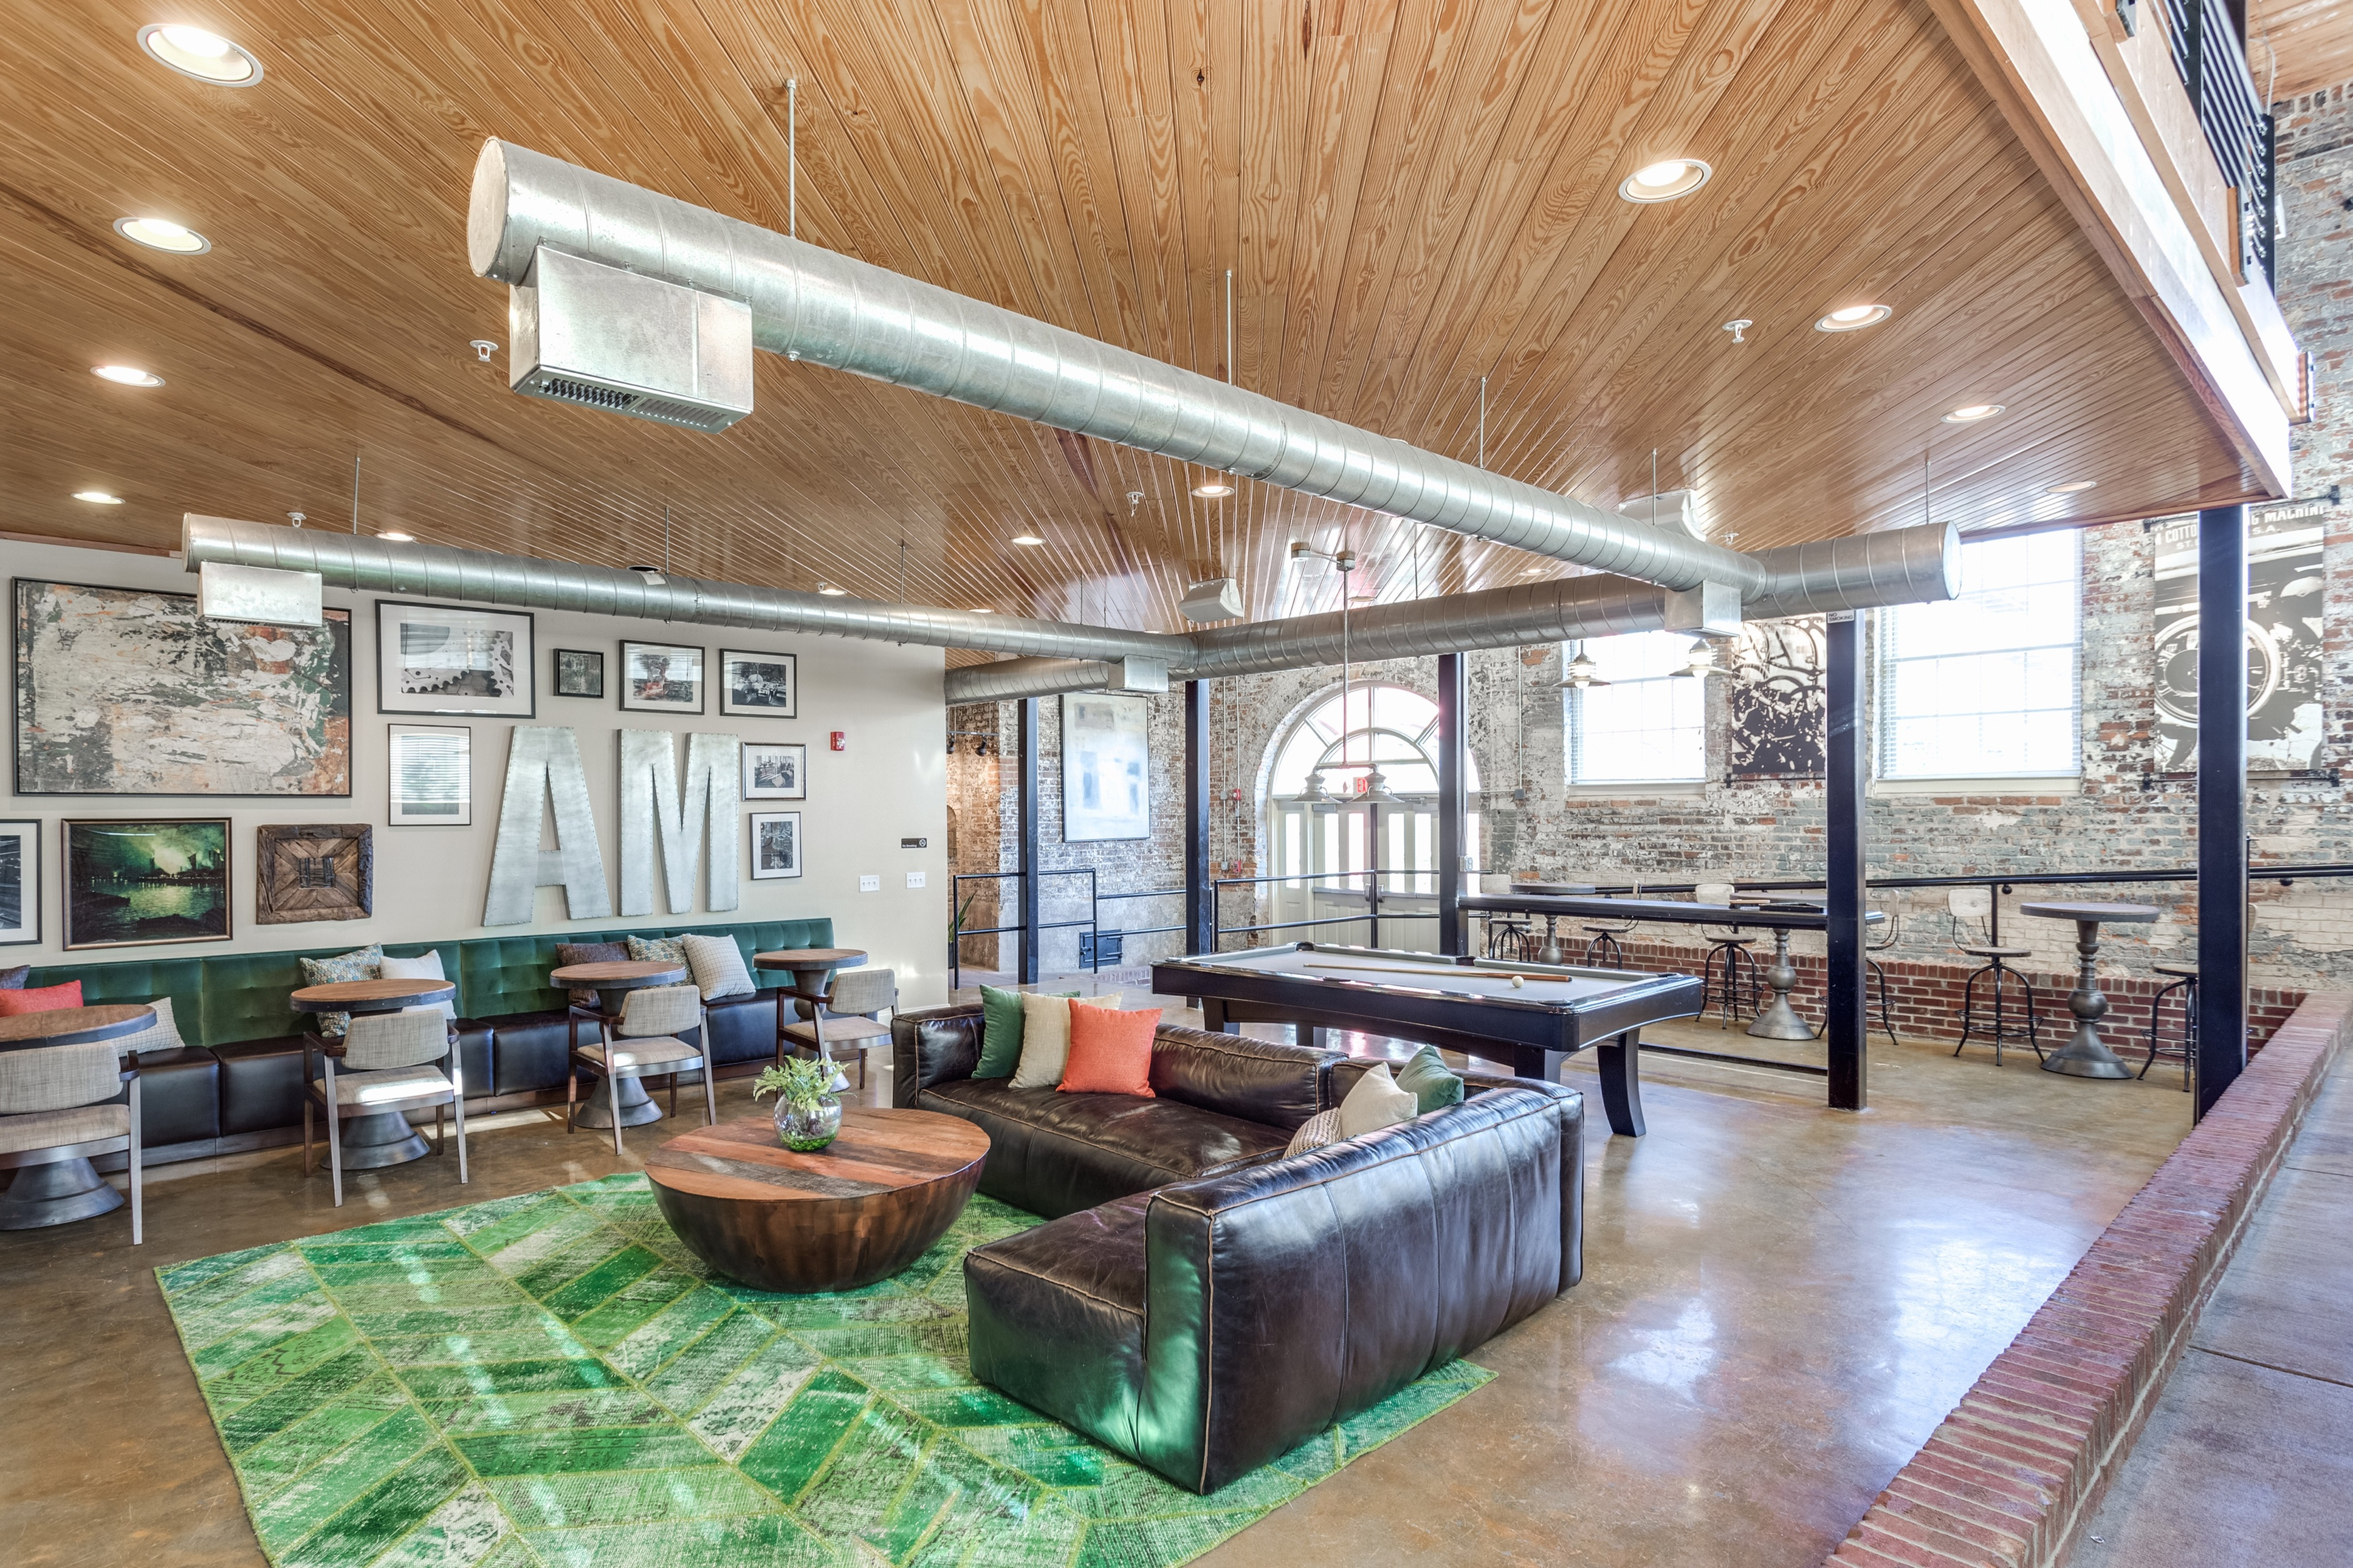 View of Resident Lounge, Showing Seating Area, Pool Table, and Mill Architecture at Alpha Mill Apartments